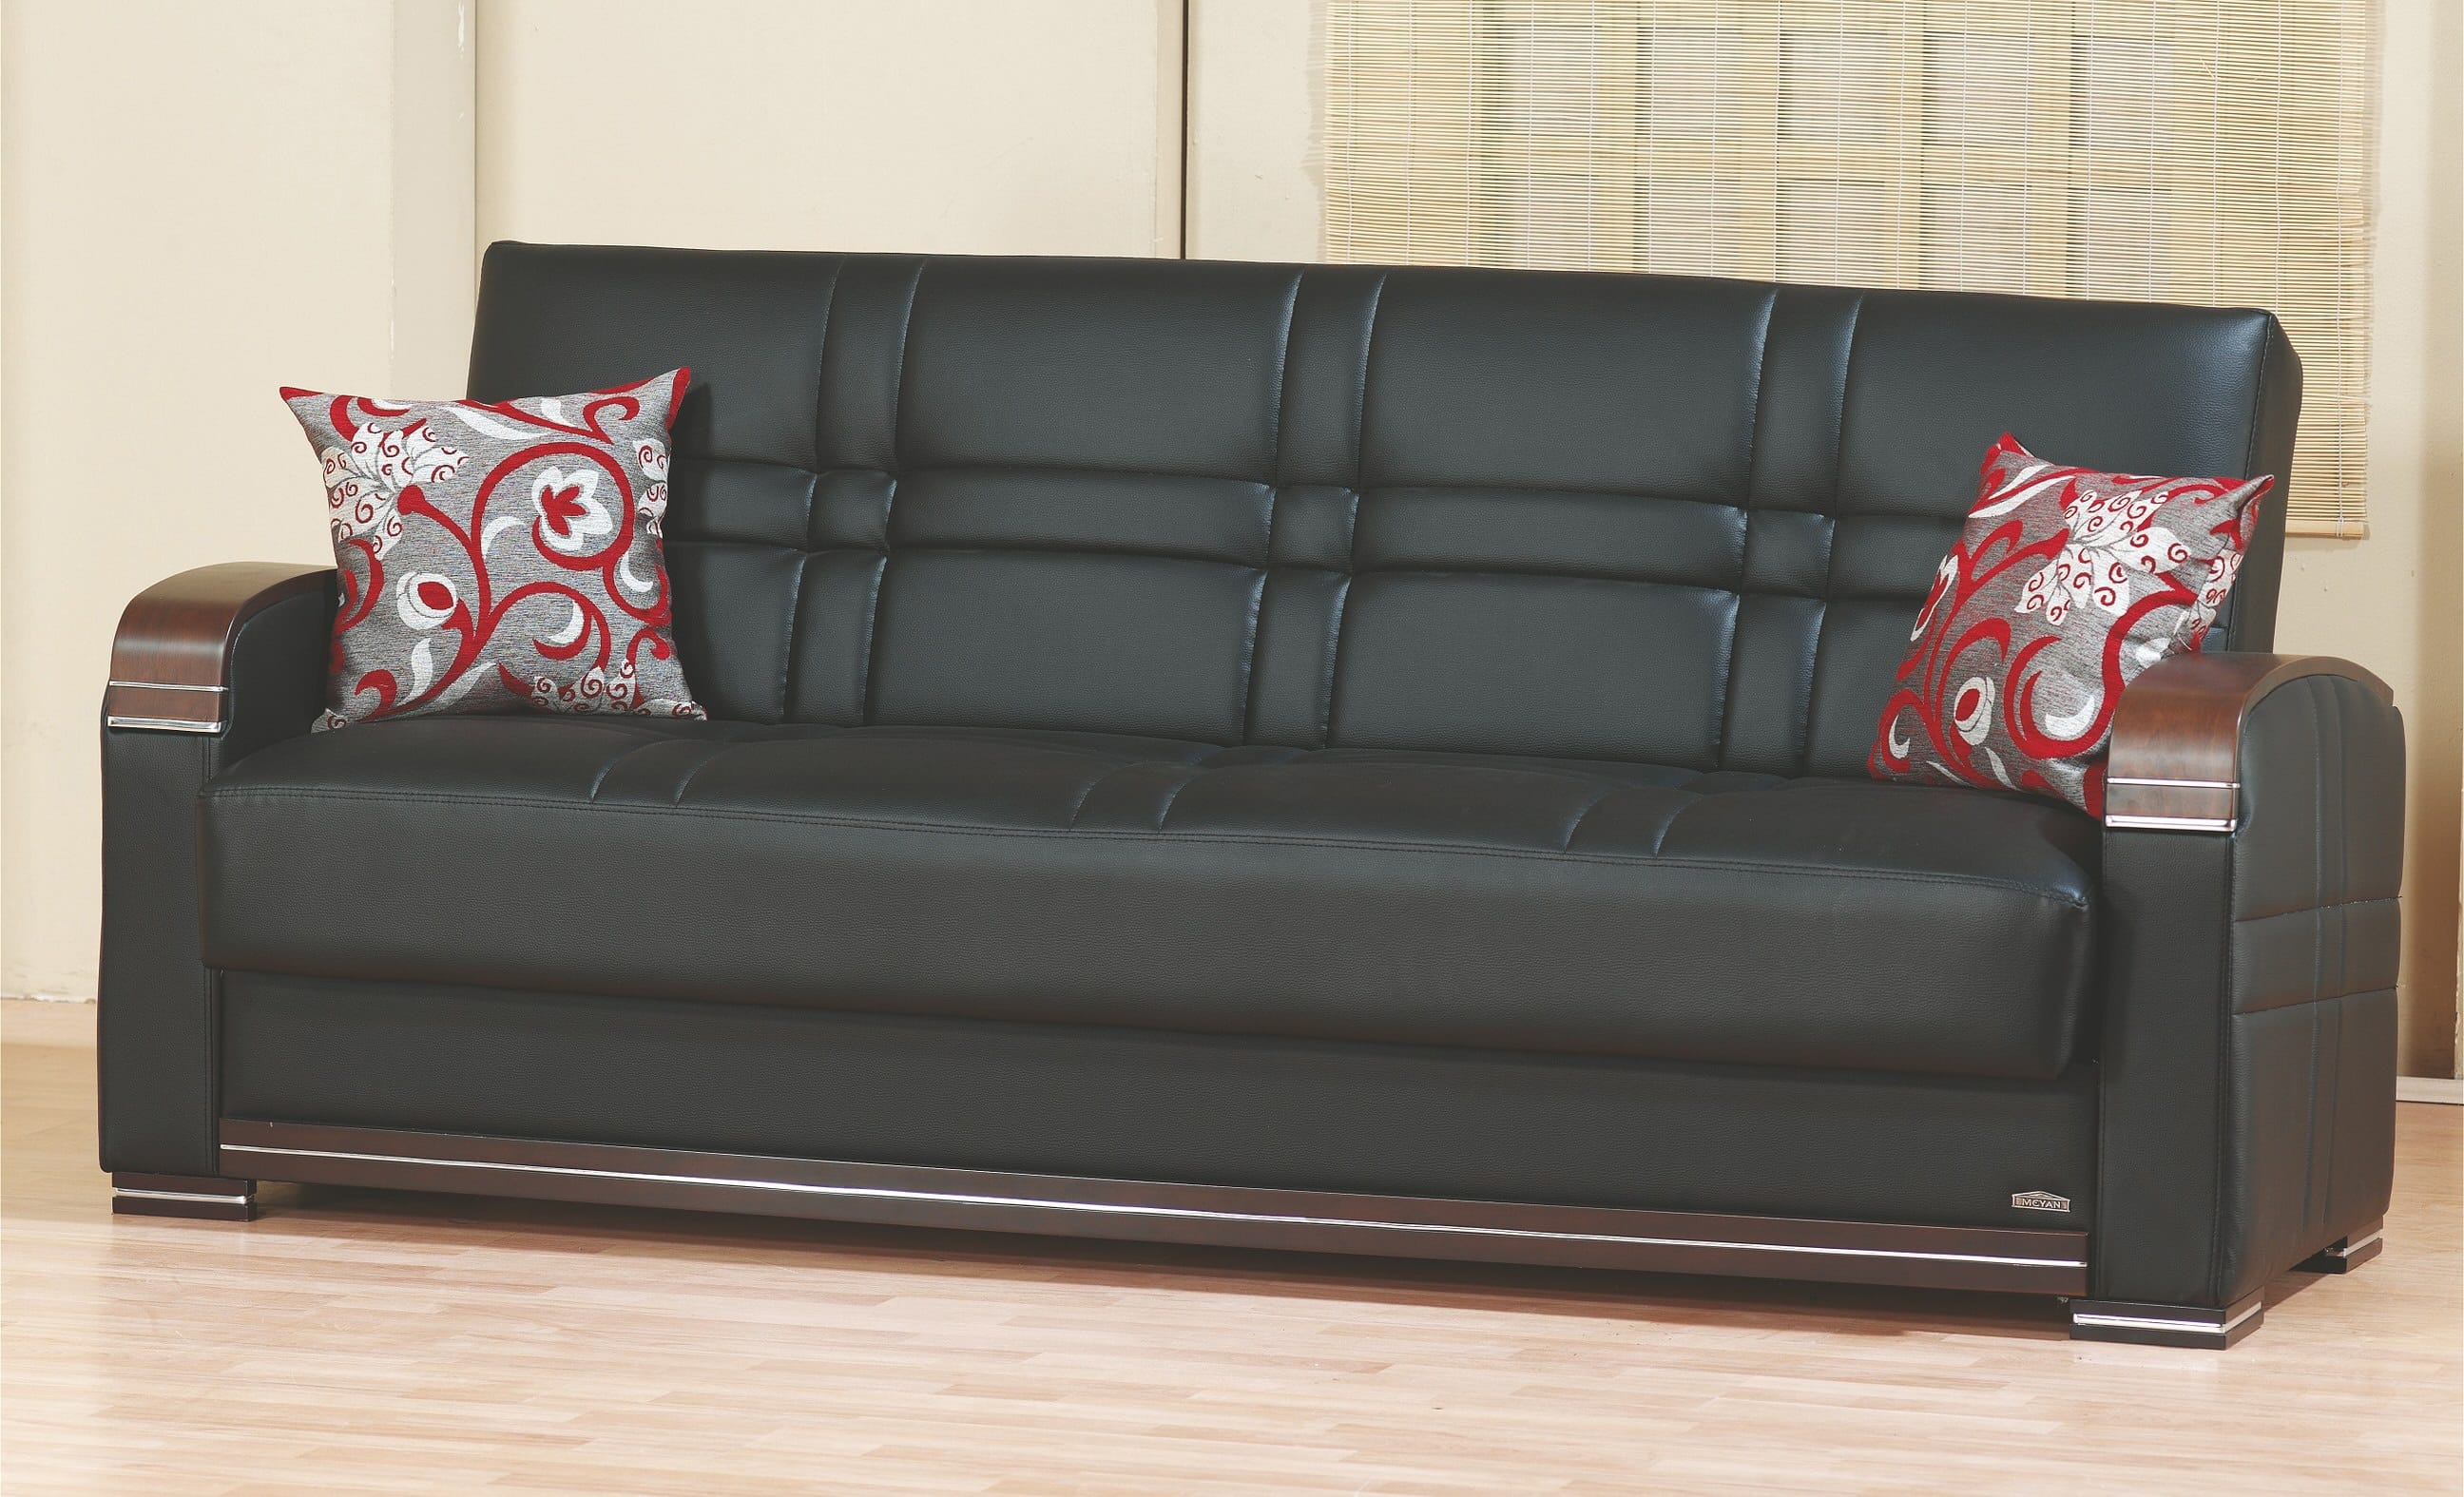 empire furniture sofa red leather sofas and sectionals bronx black bed by usa